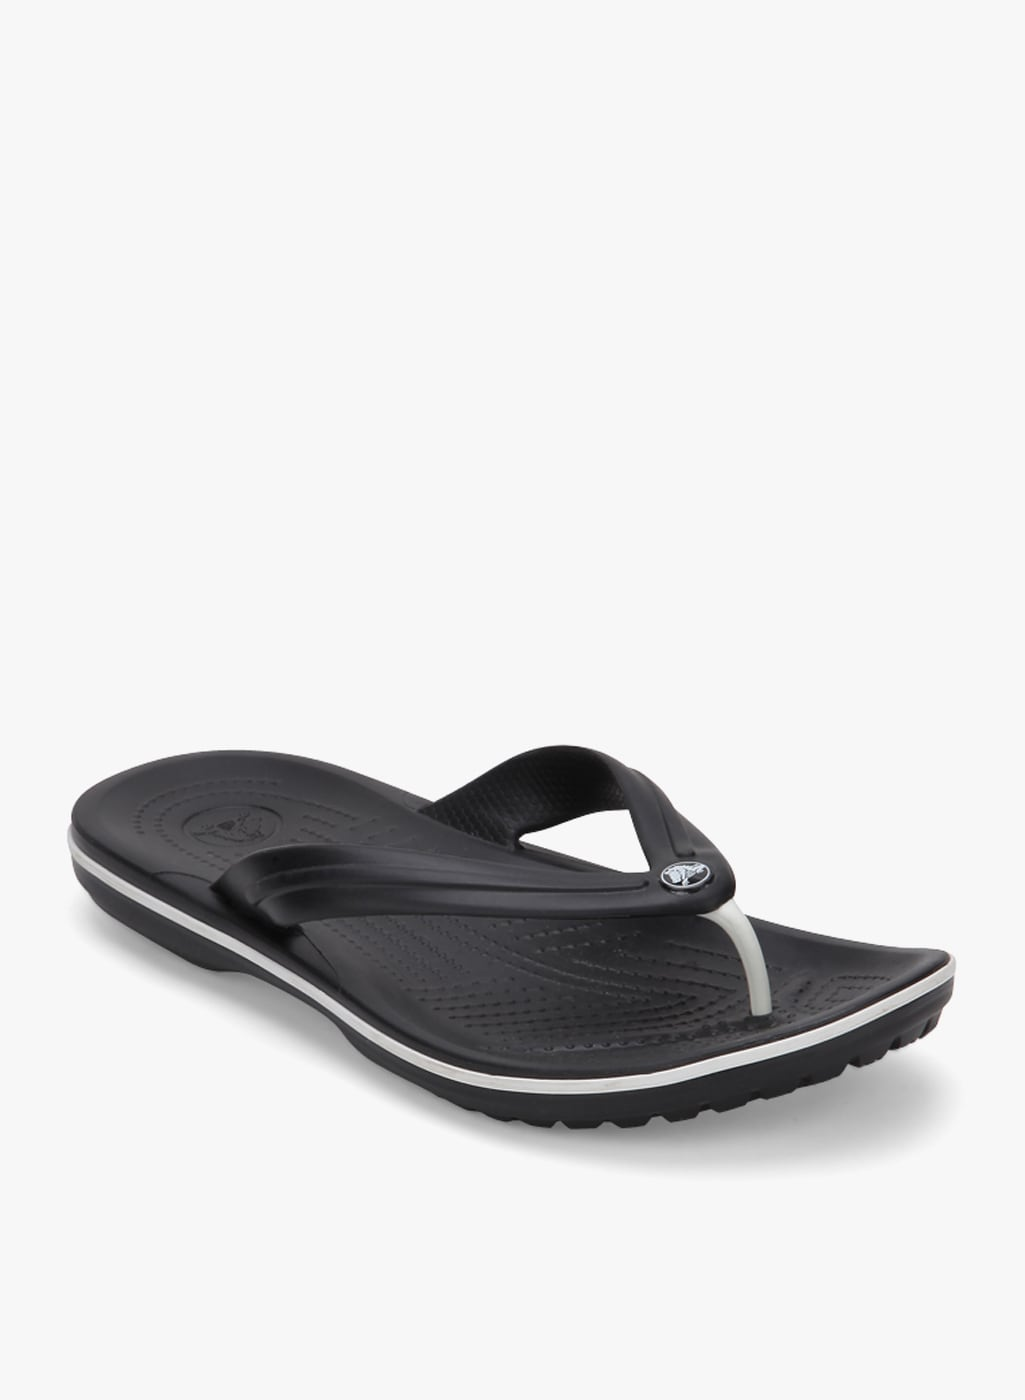 89d5c9248 Crocs Crocband Lopro Black Flip Flops for Men online in India at ...